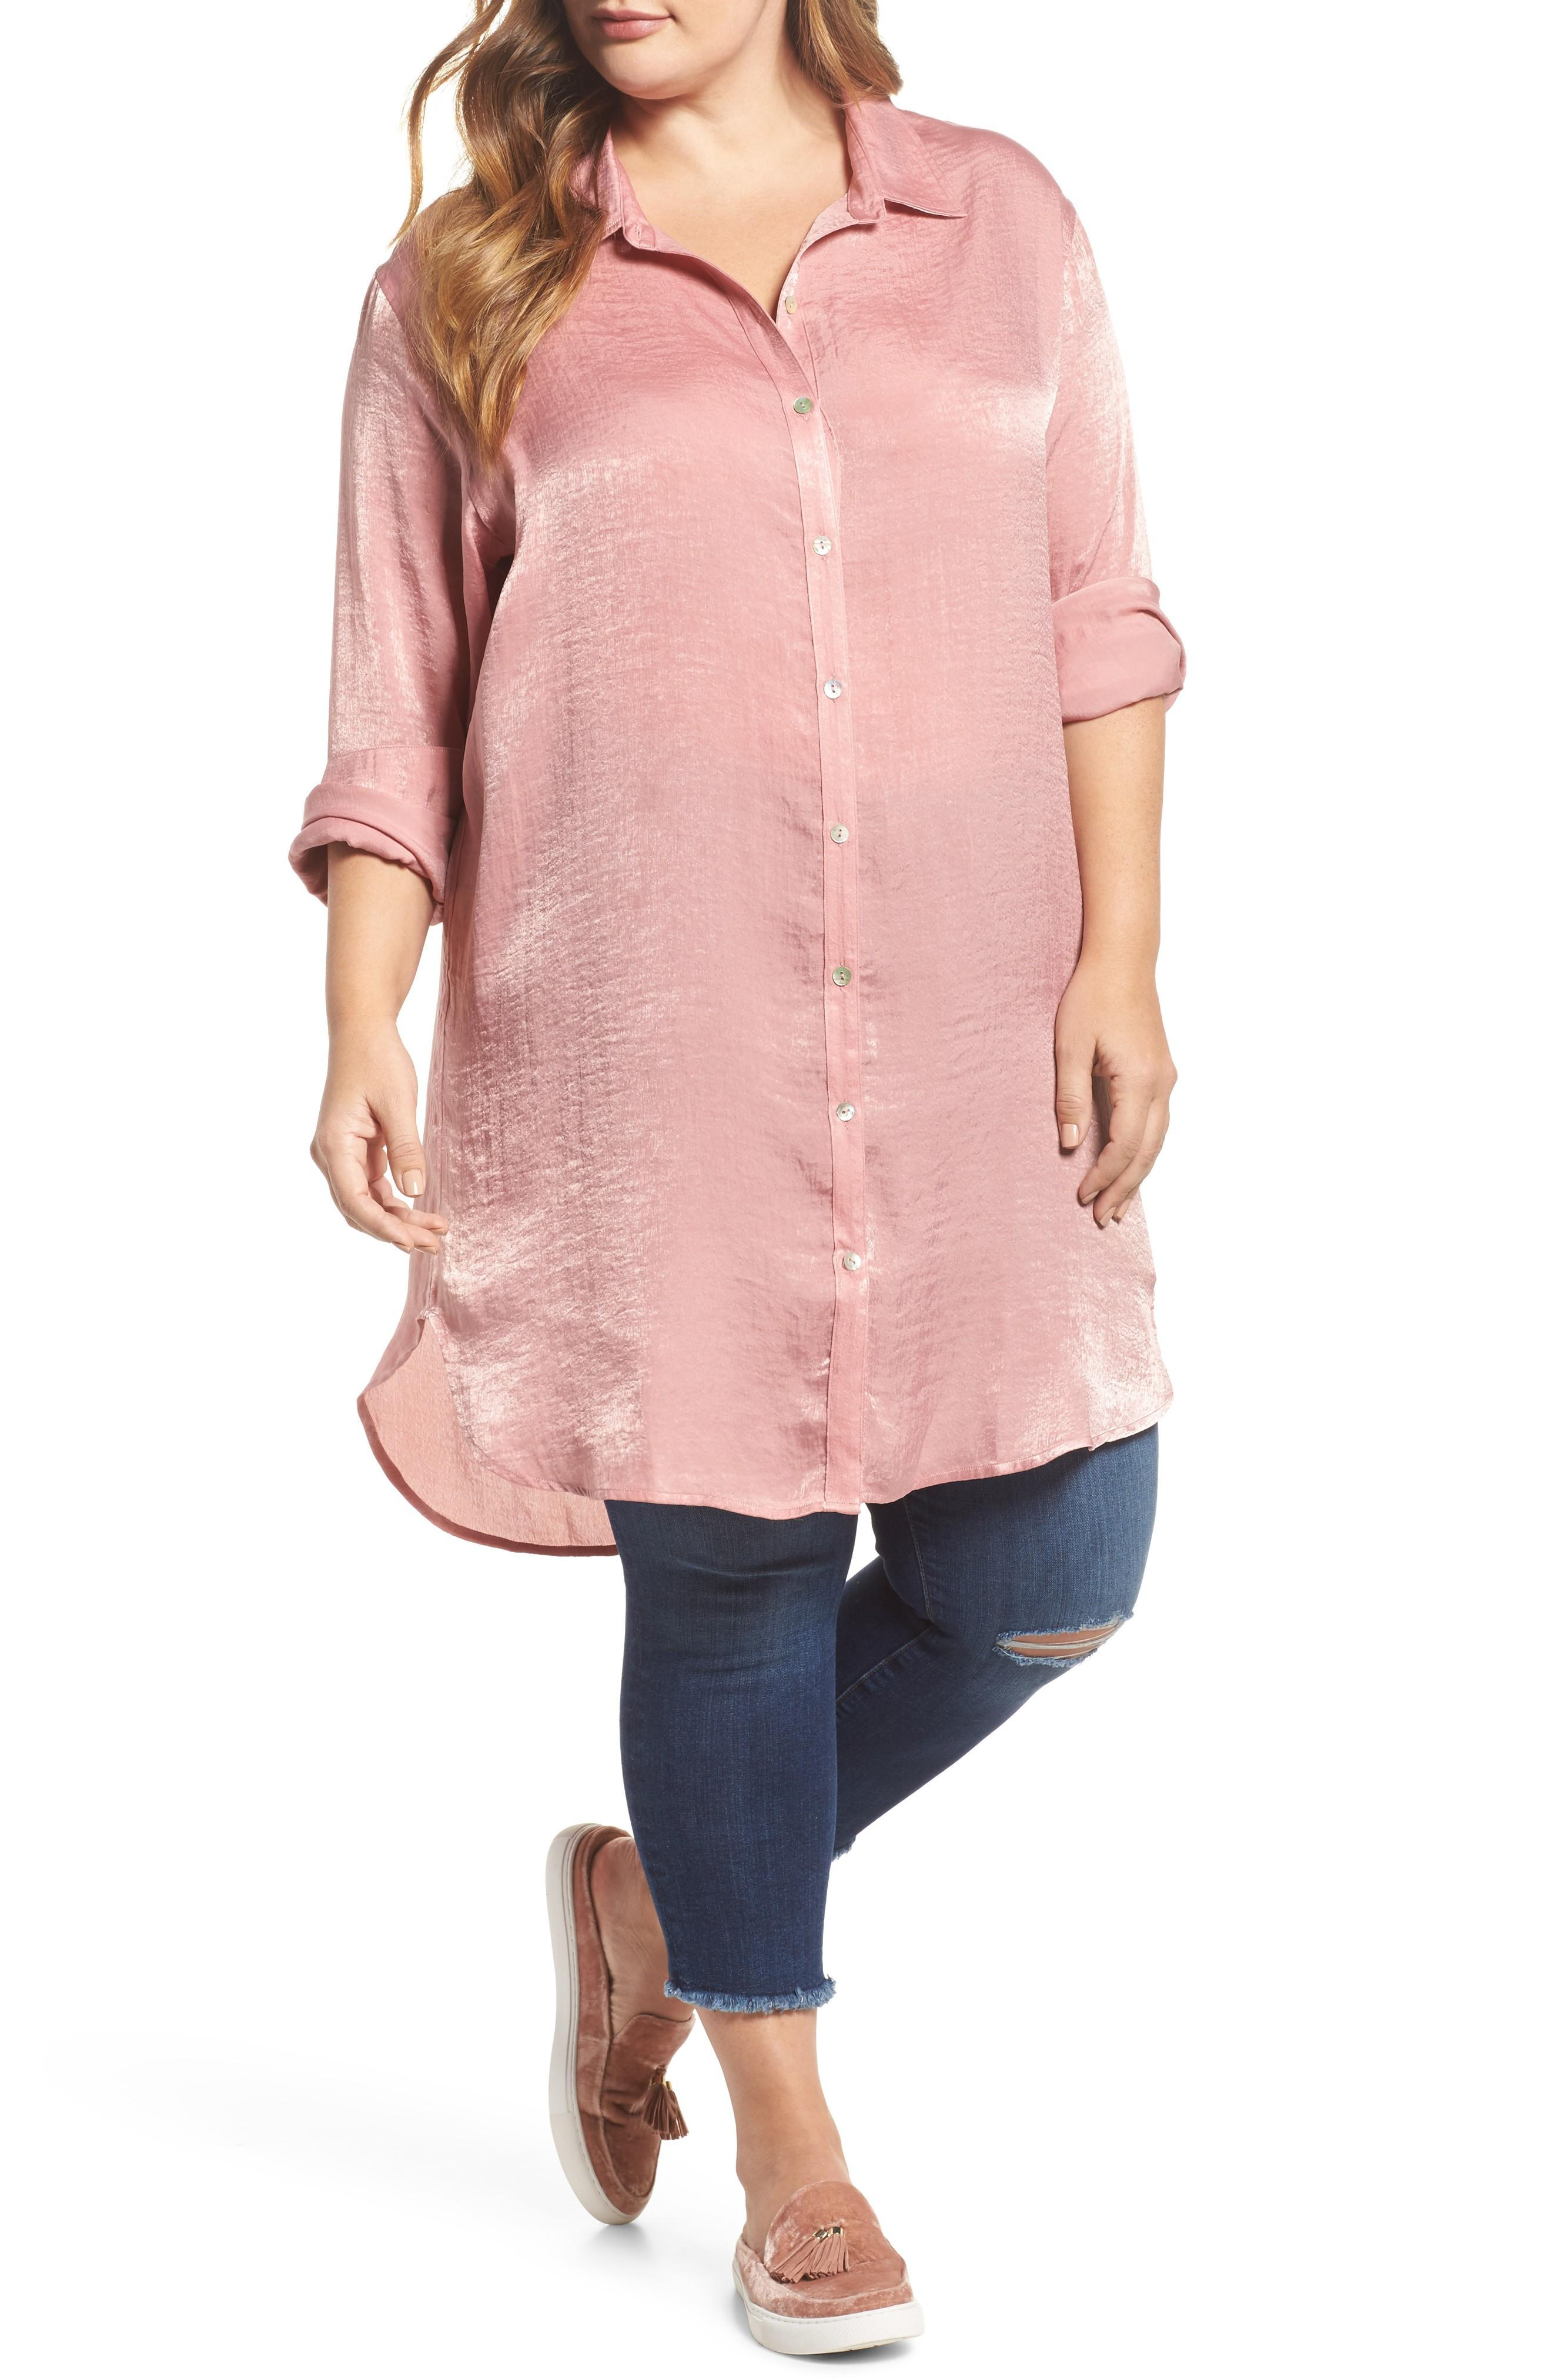 Slink Jeans Hammered Satin Tunic Shirt In Rosewood